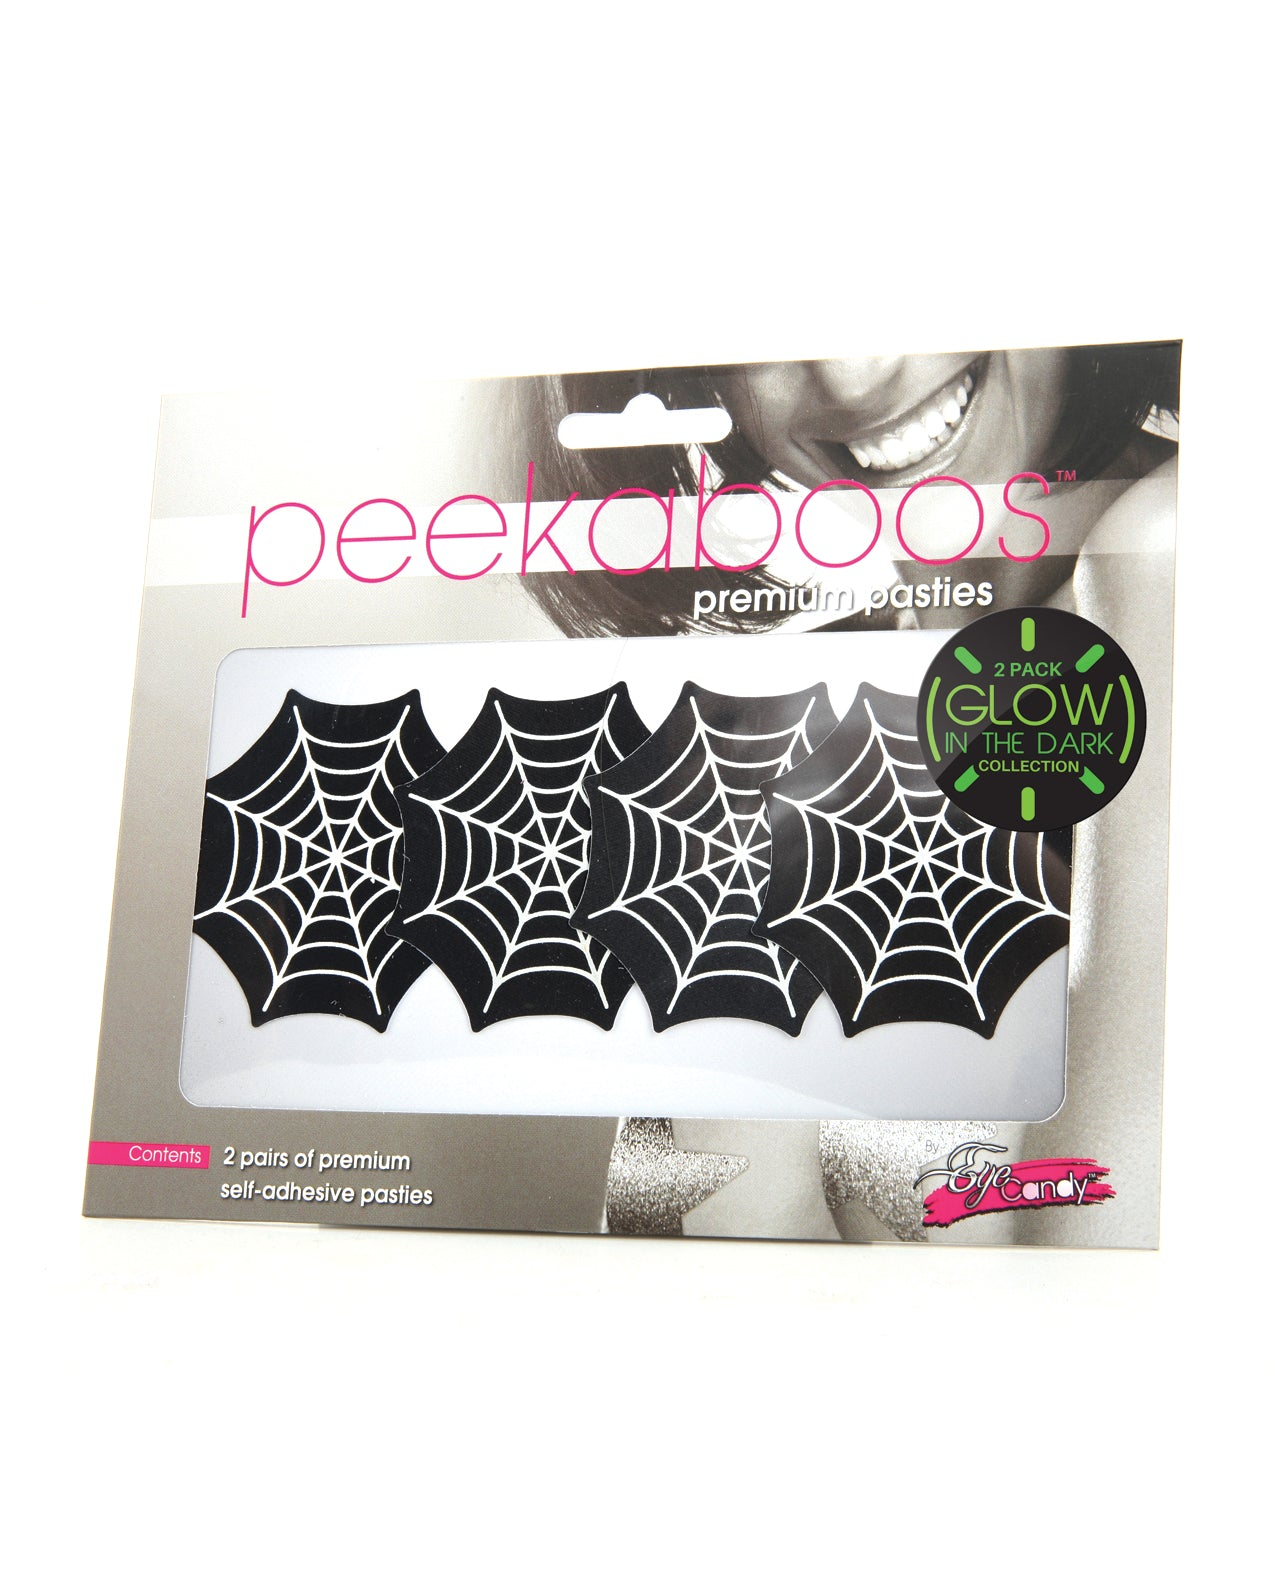 Peekaboos Glow in the Dark Webs - Pack of 2